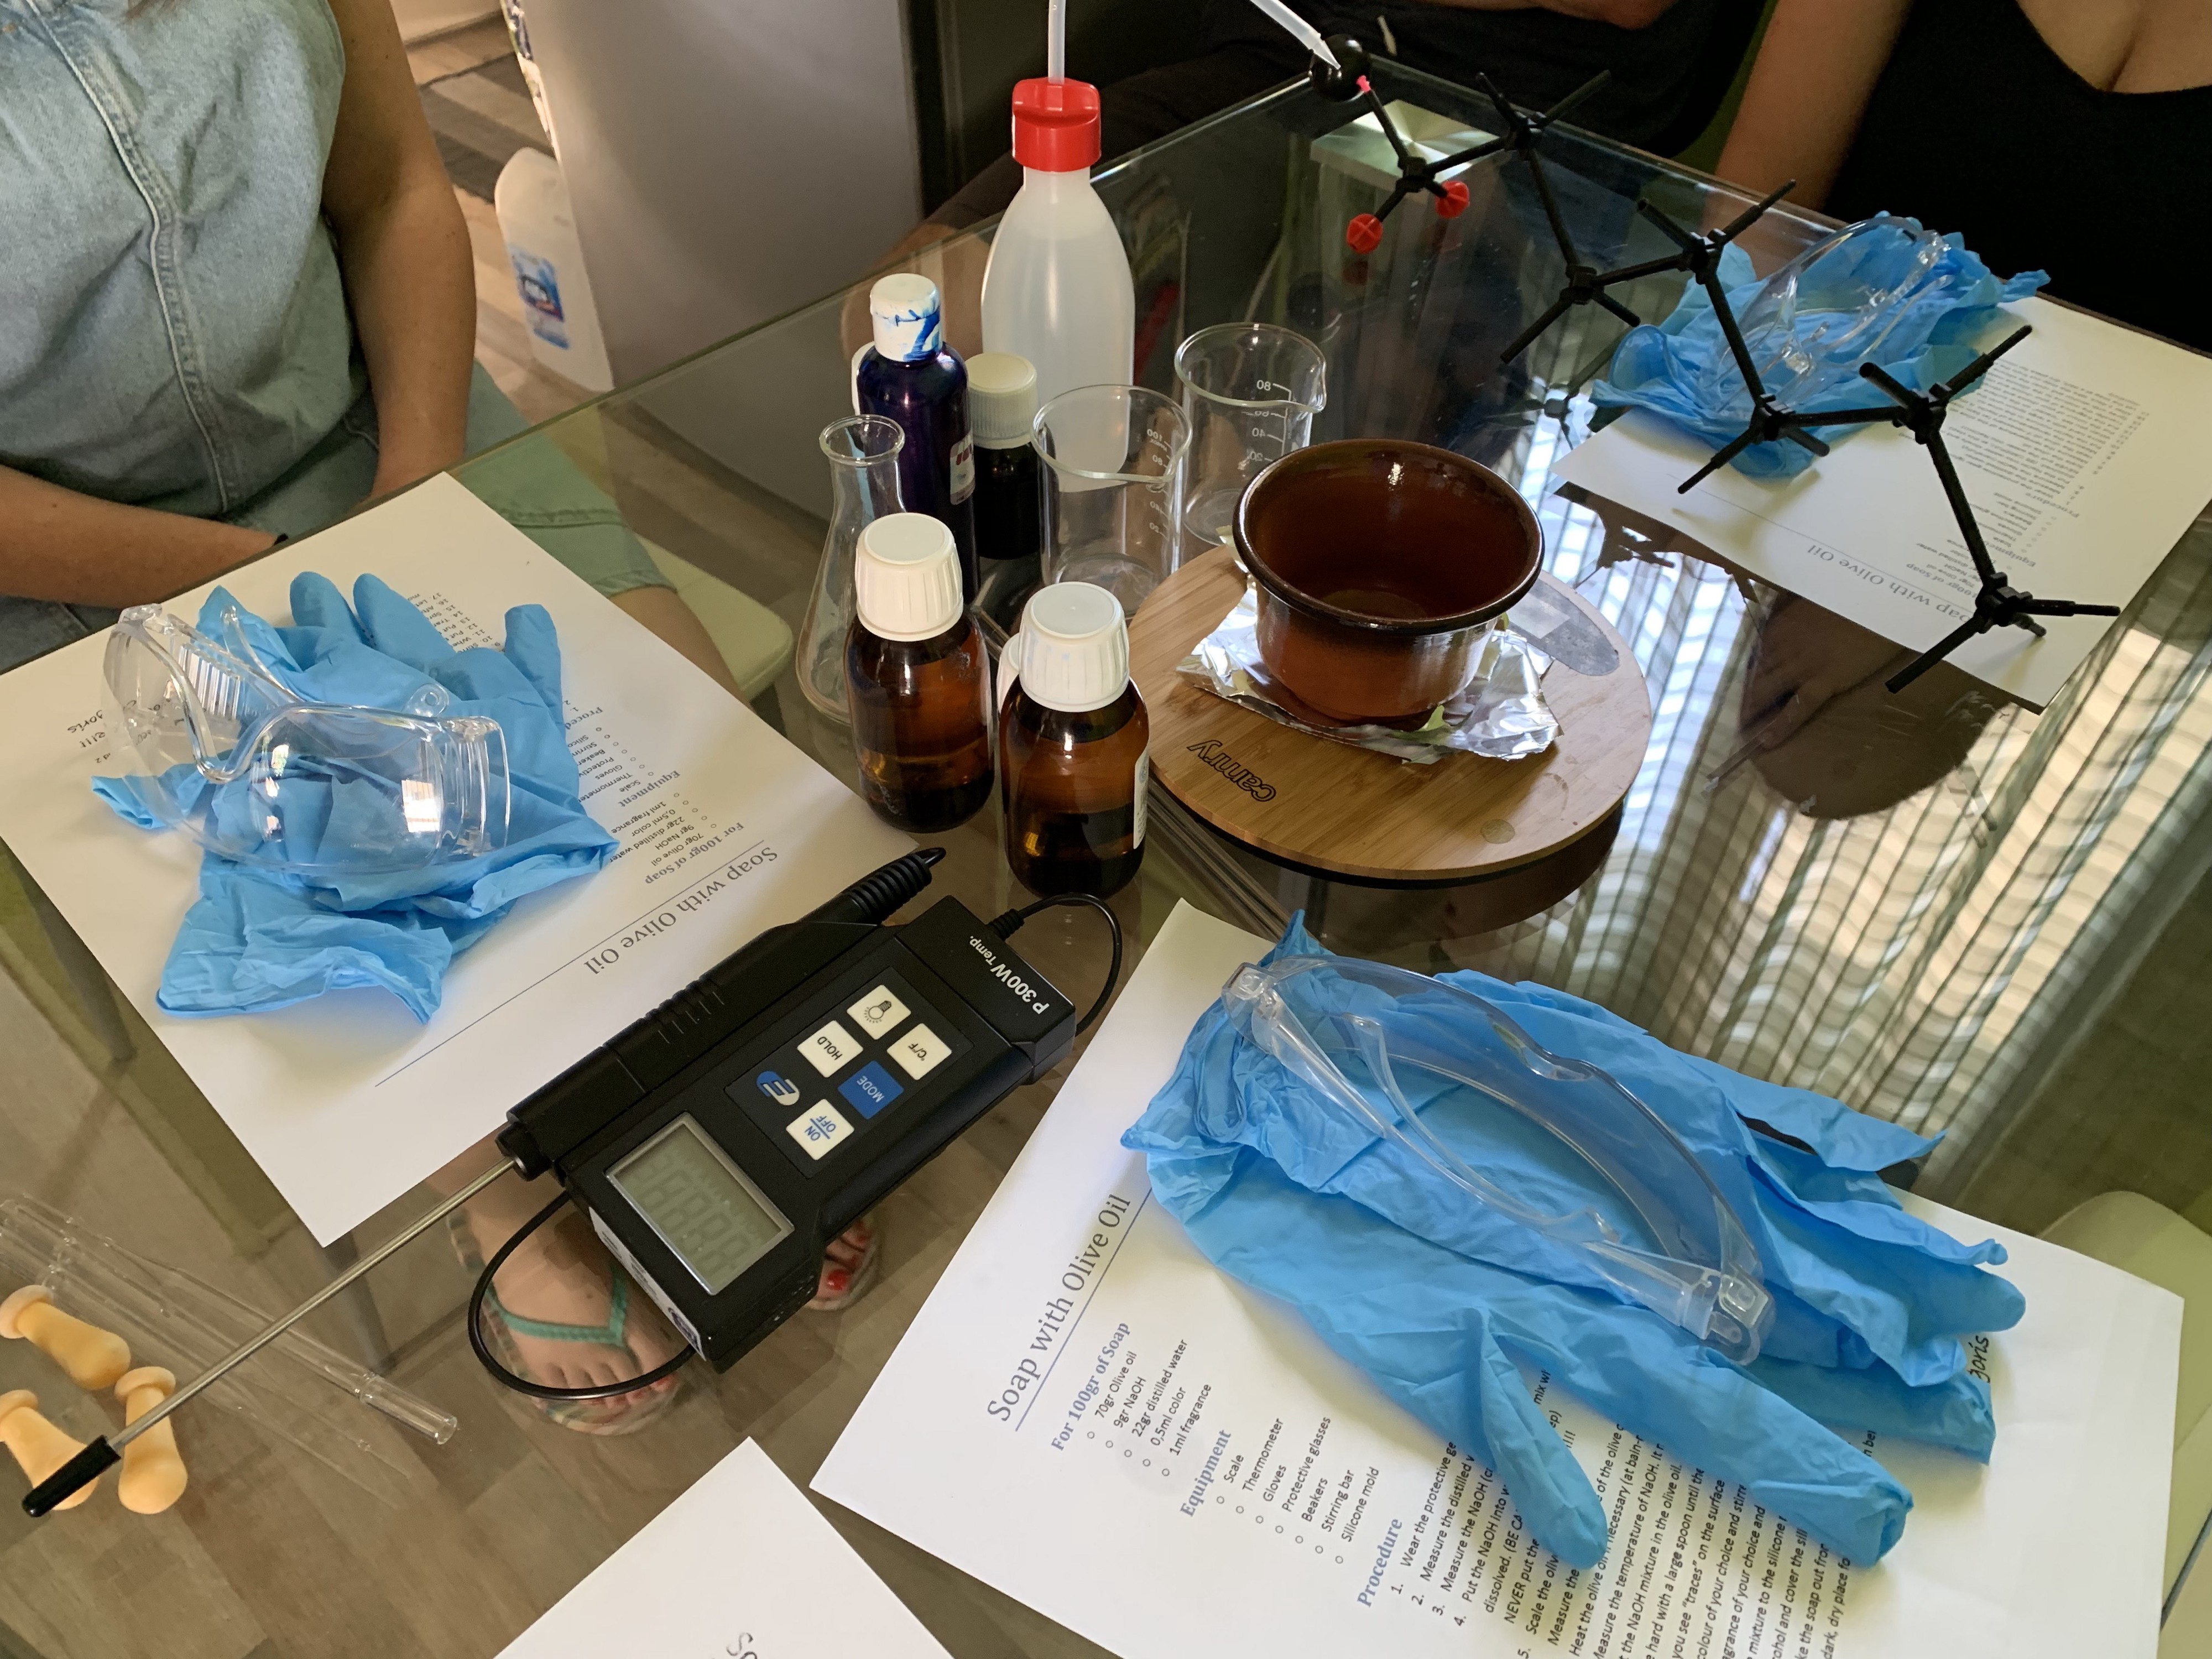 Gloves, goggles, a digital thermometer, and bottles of liquid